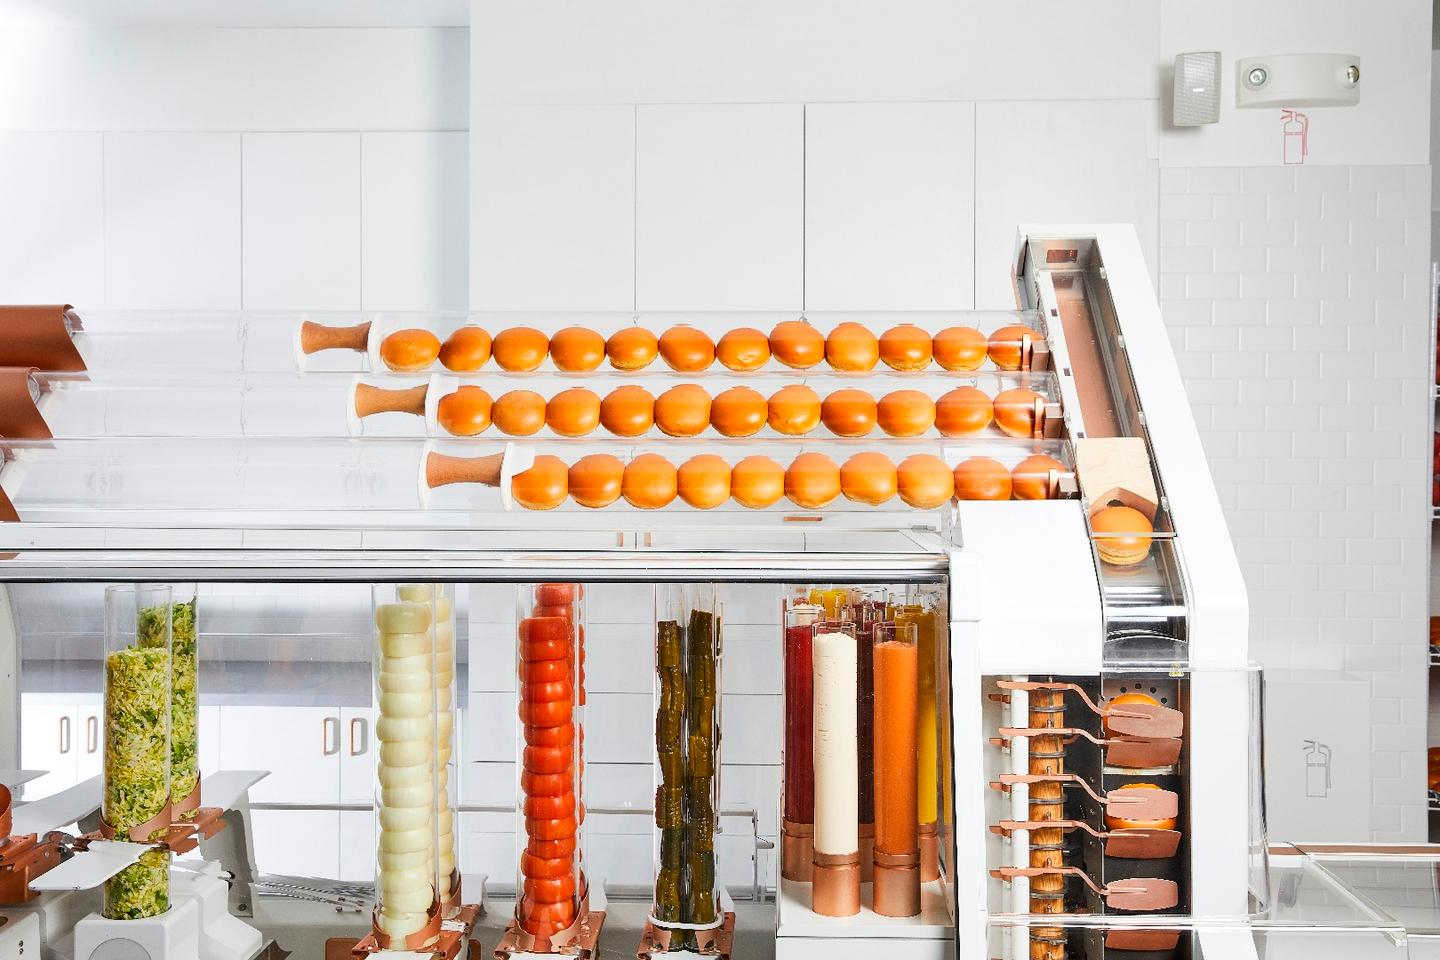 The Creator robot slices and butters the brioche buns only as each burger is being made, plus it applies a variety of gourmet sauces and seasonings